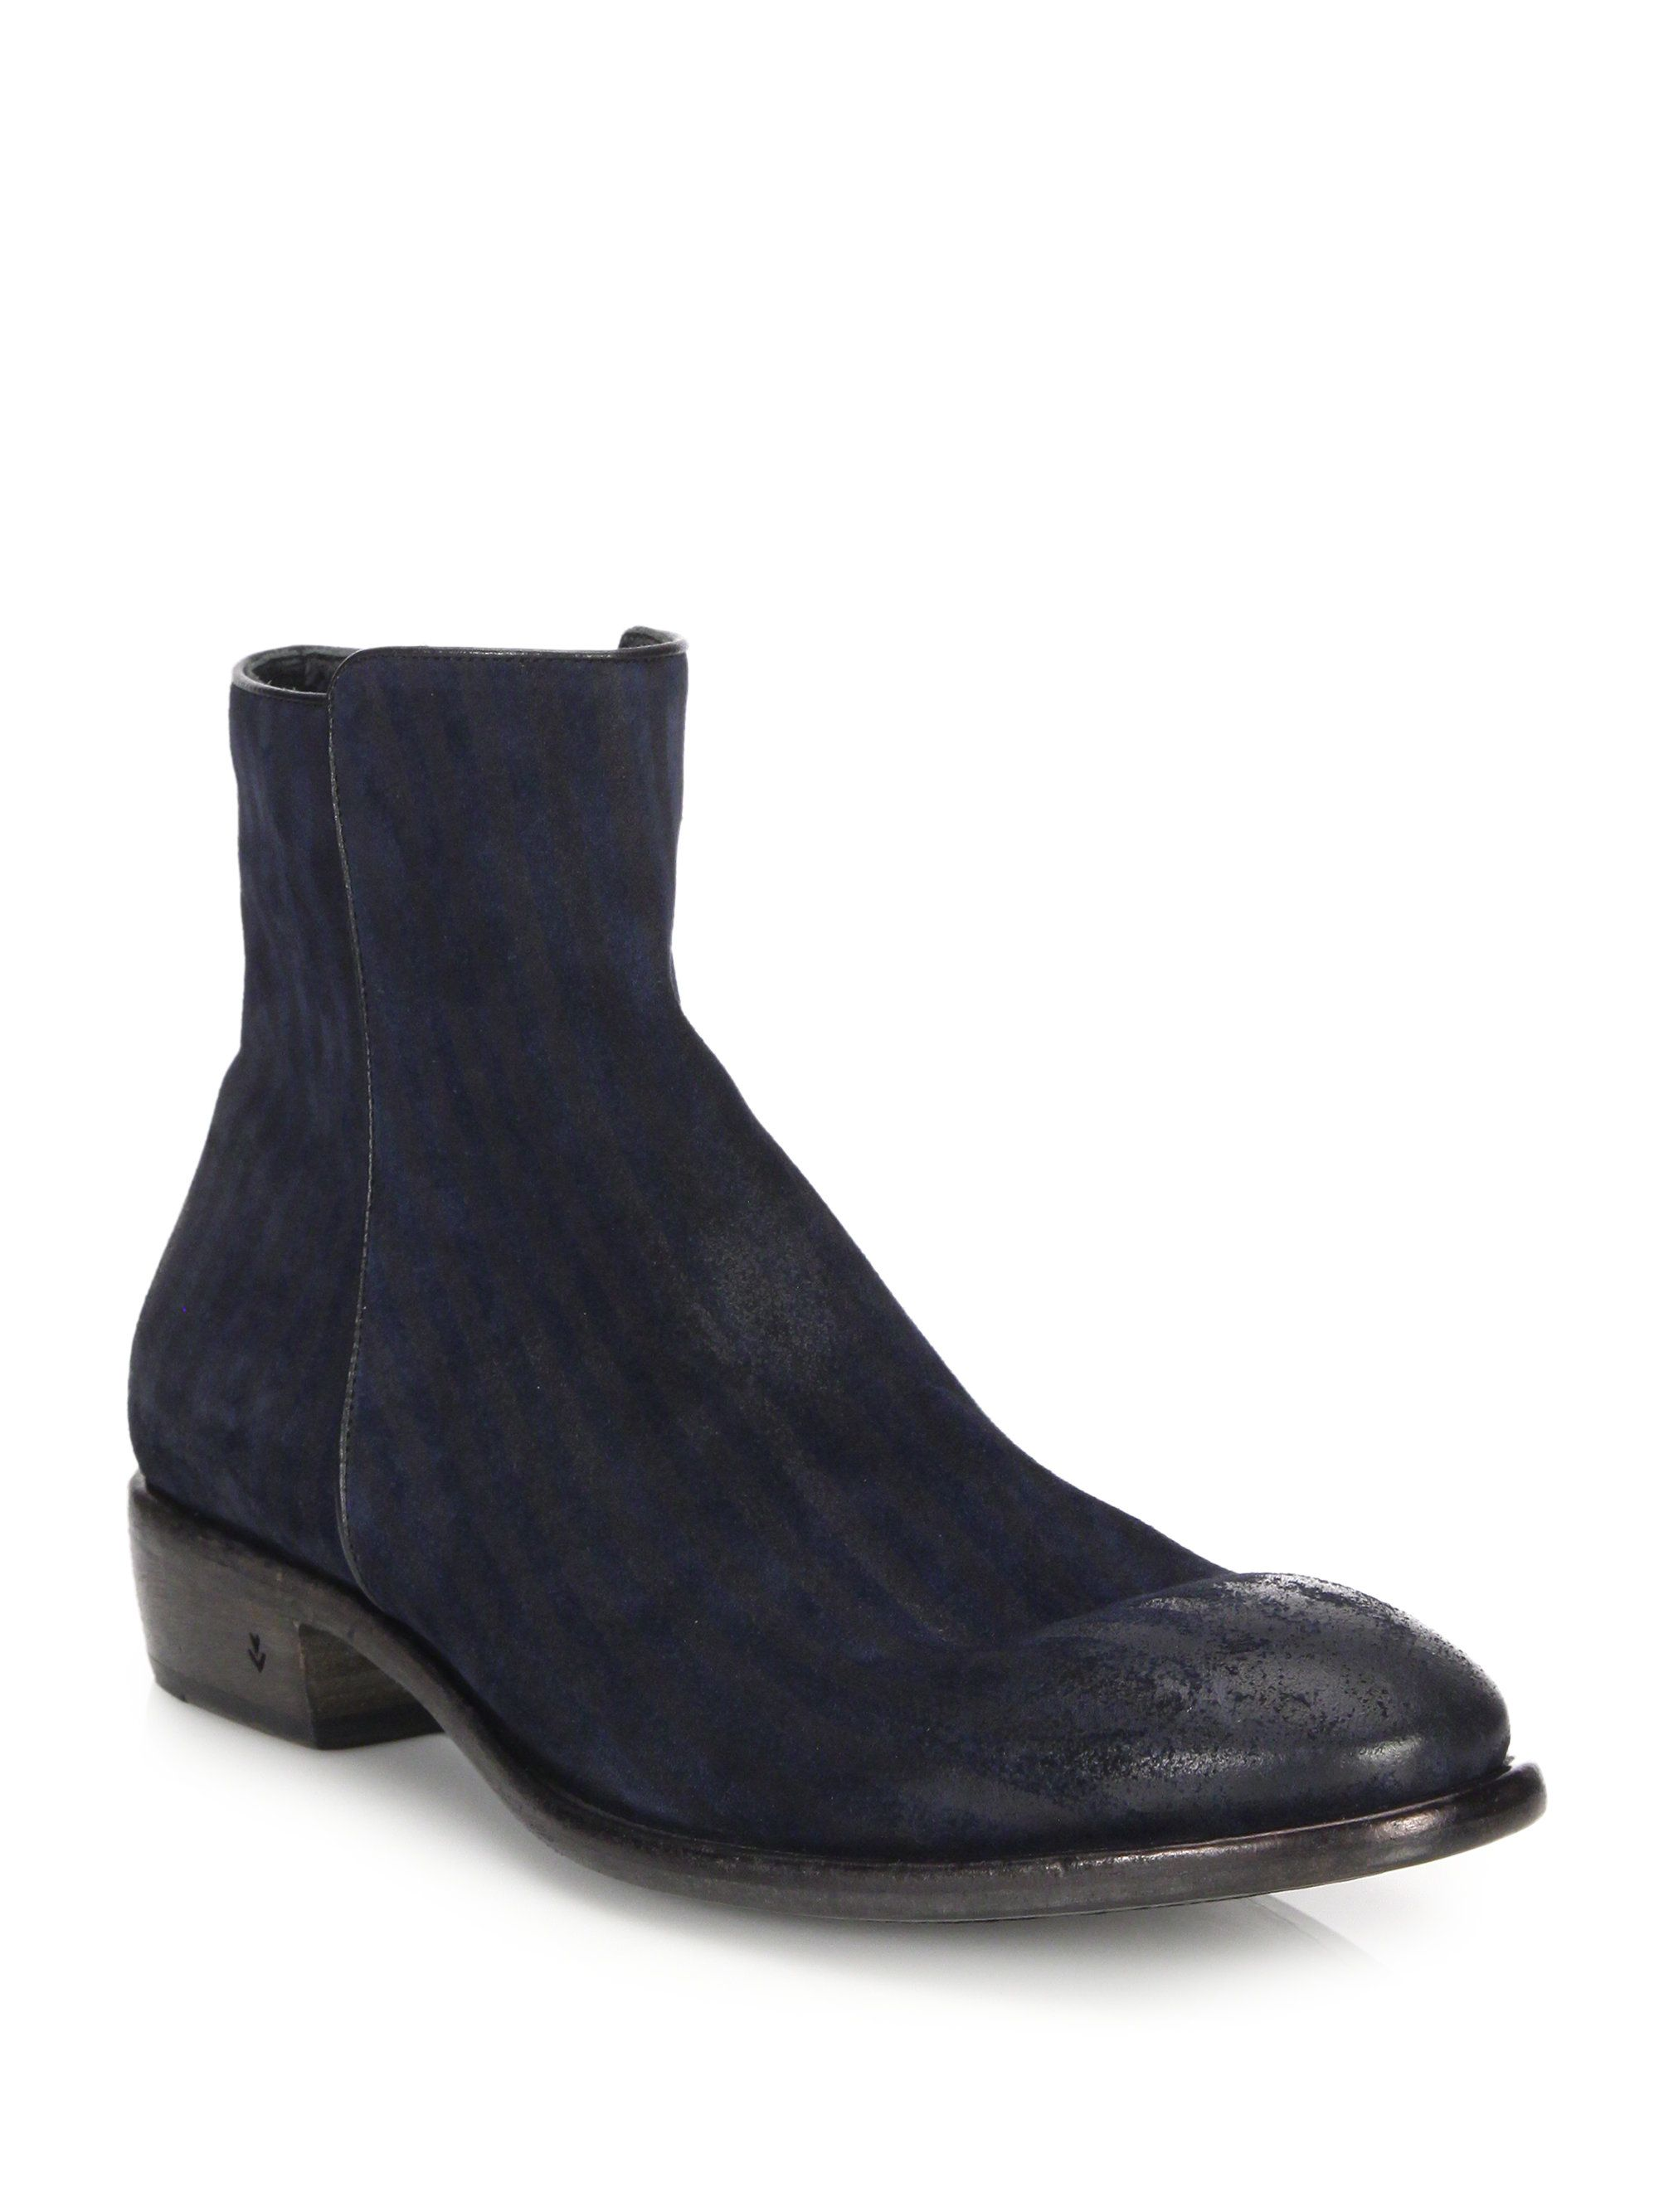 John Varvatos - Blue Keith Suede Zip Ankle Boots for Men - Lyst